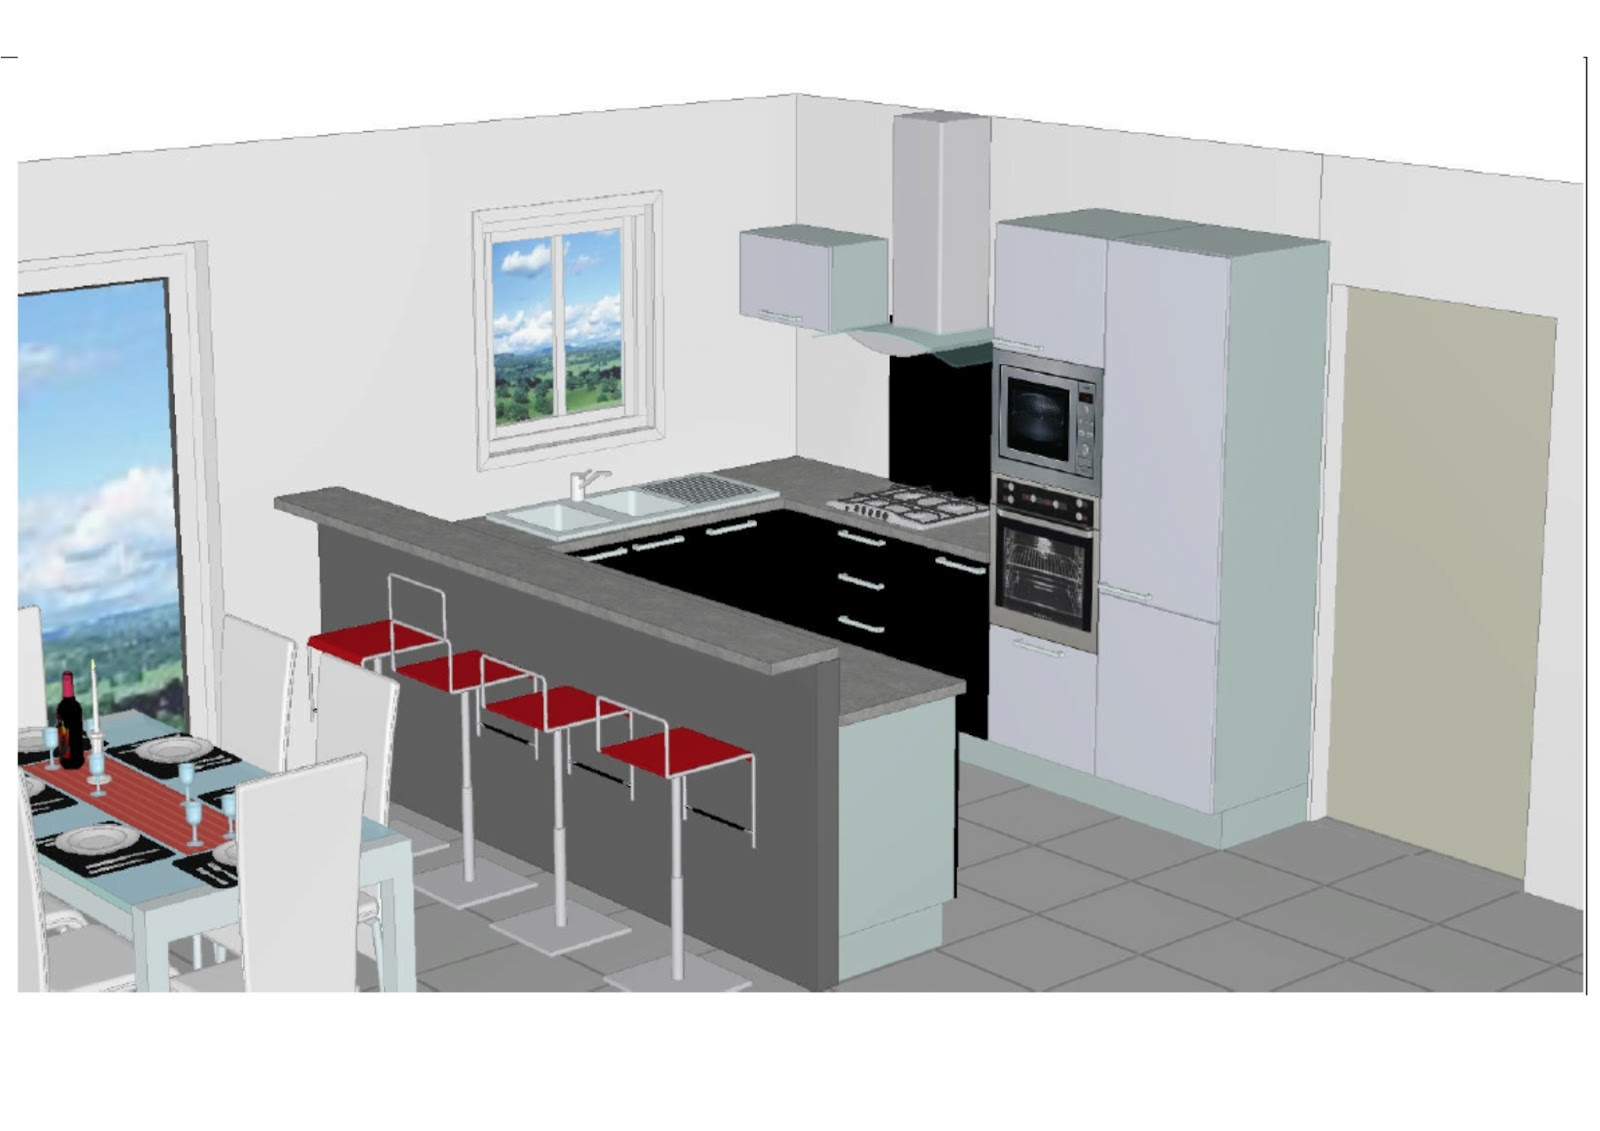 Maison sponsoris e 41 label rt 2012 oucques 41290 for Projet de cuisine en 3d